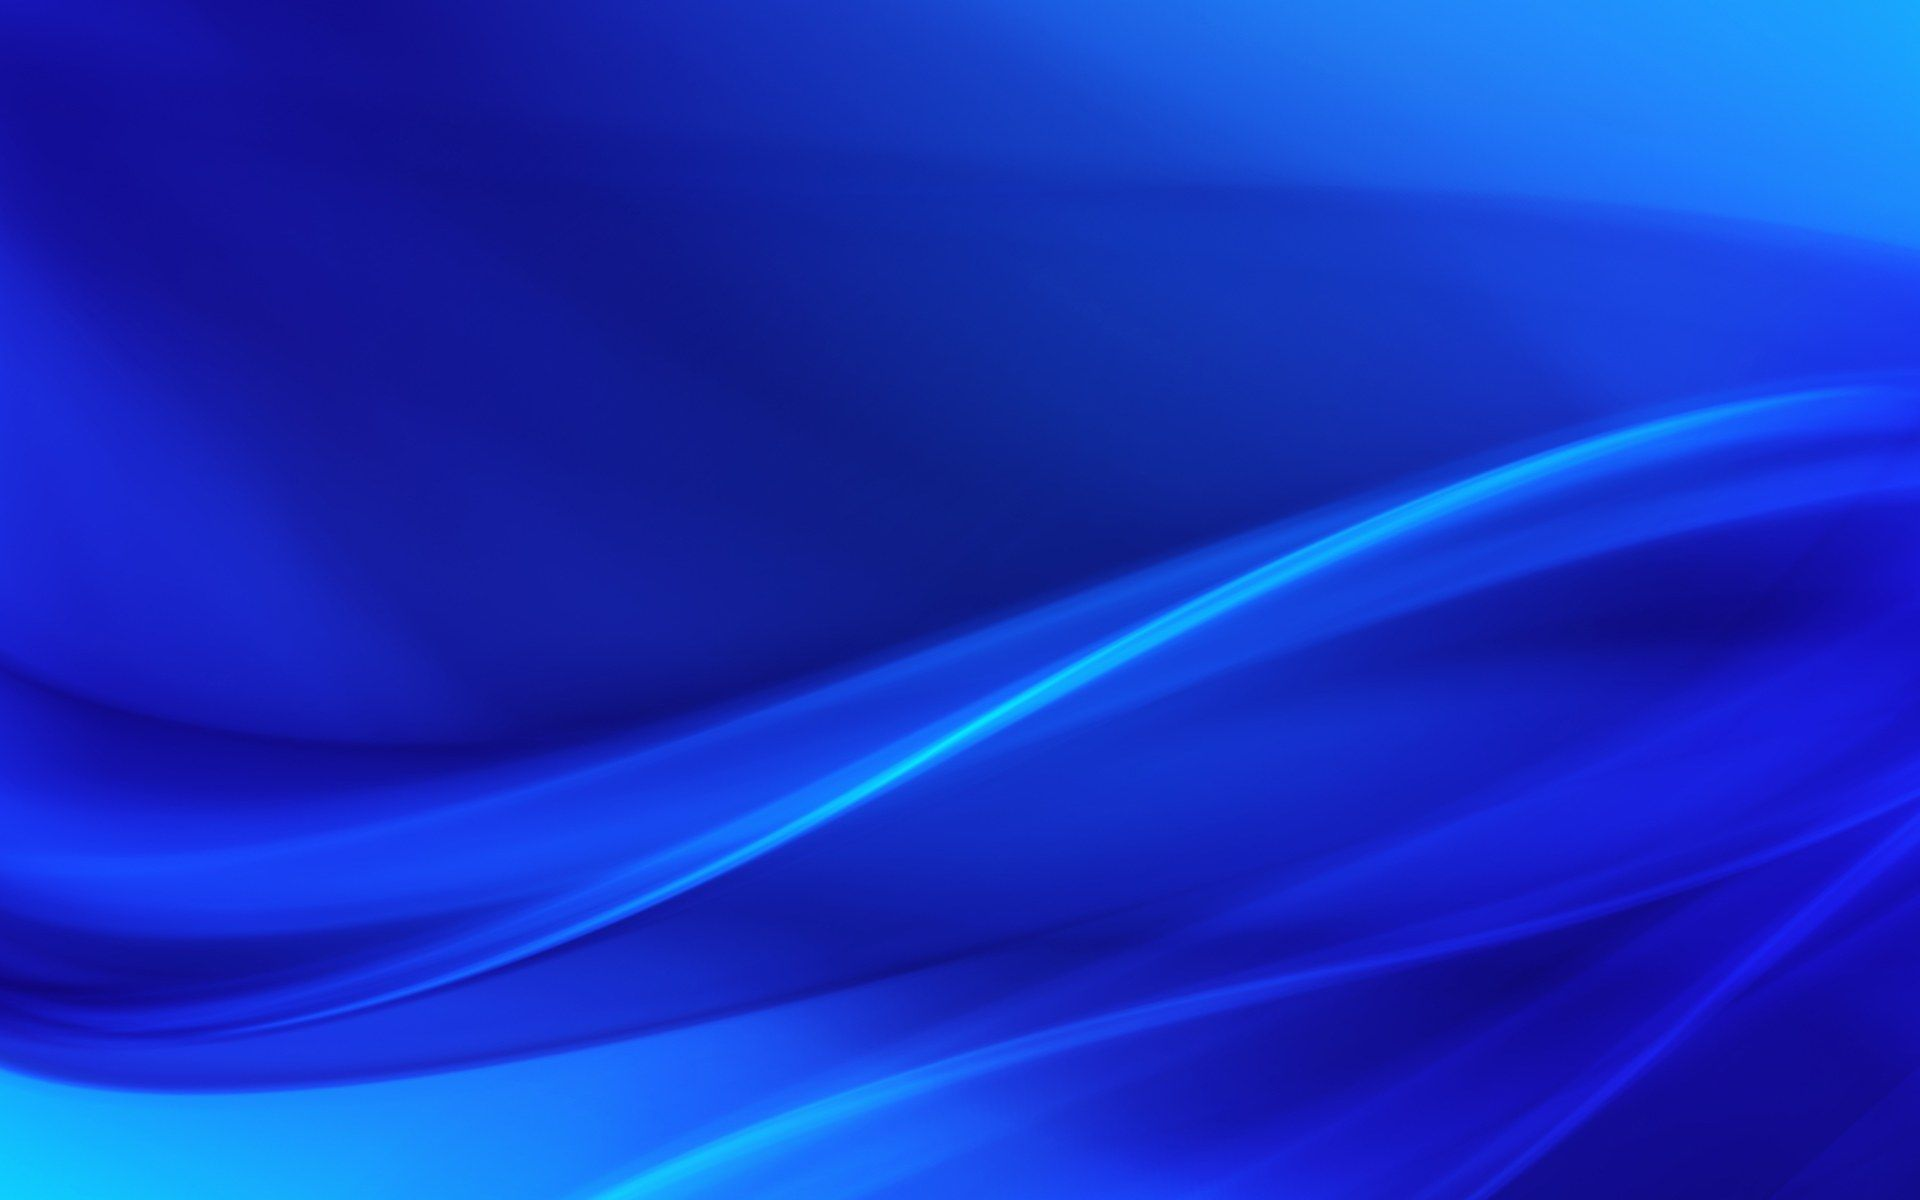 Wallpaper Blue